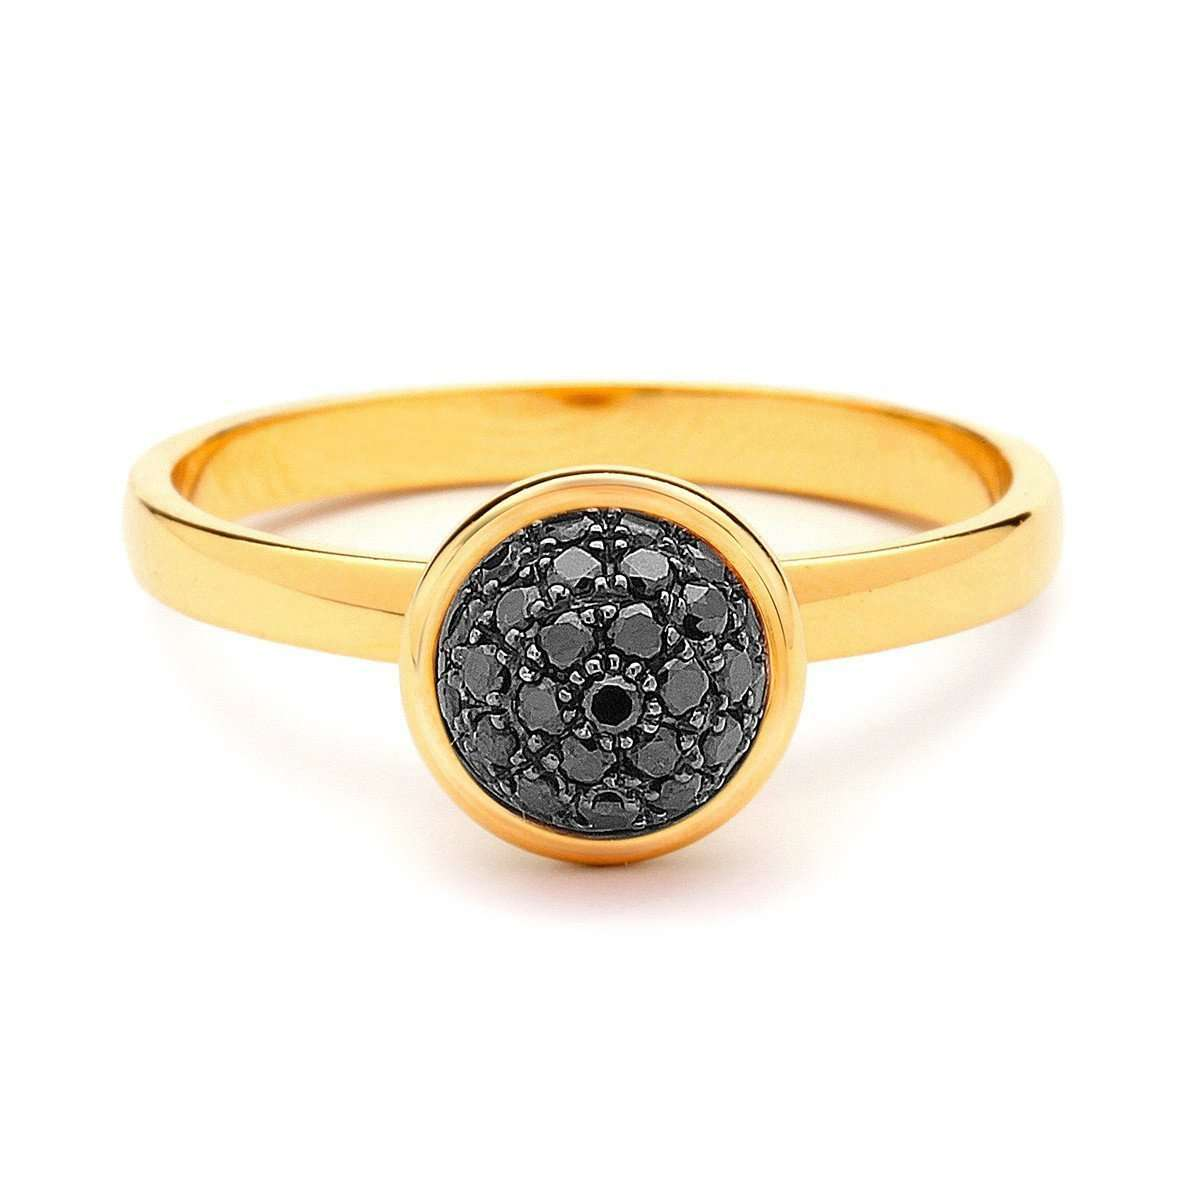 18kt Small Black Diamond Bauble Ring-Syna-JewelStreet US